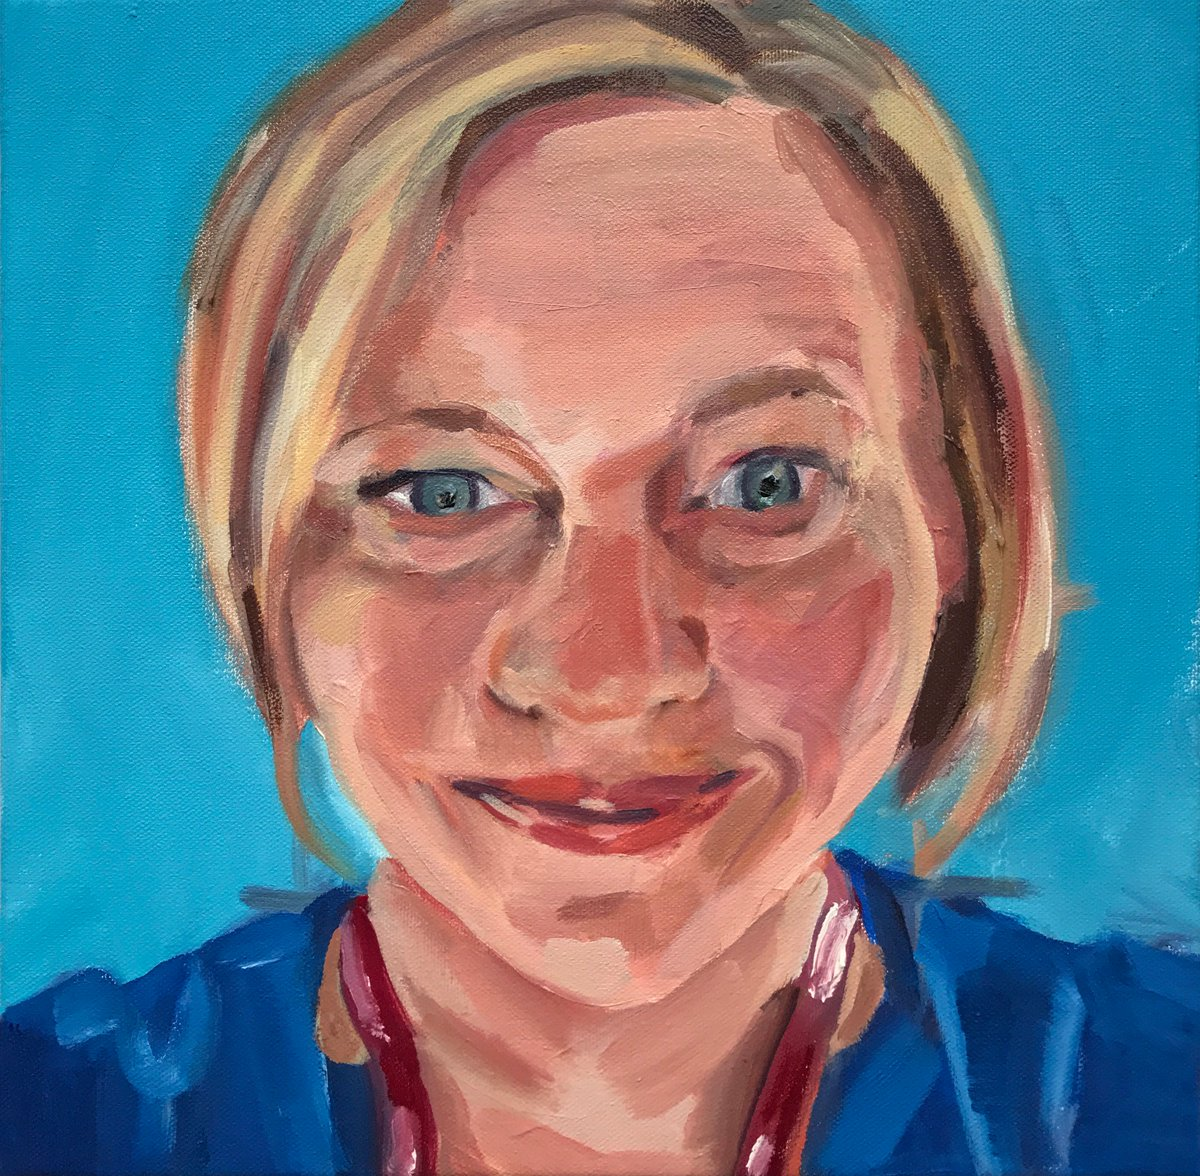 My seventh finished #portraitsfornhsheroes painting for the @tomartist32 project. This is Bronwyn Middleton @bbmidd a consultant Obstetrician and Gynaecologist at St Richard's Hospital, Chichester @westernsussex where she has worked for 7 years #NHSheroes #painting #portraiture https://t.co/9V4oy7esCK